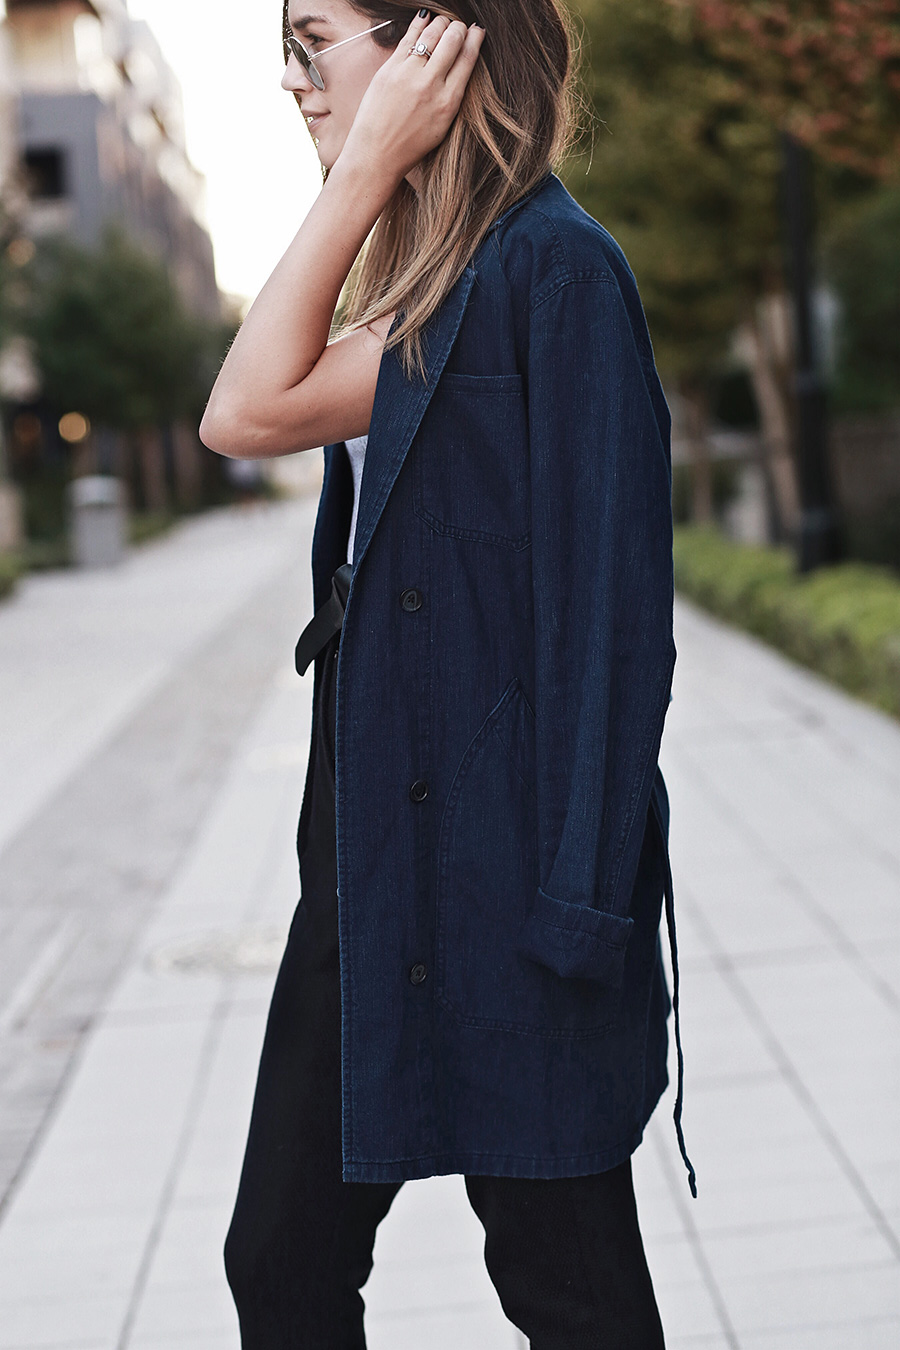 Ombre Hair Denim Trench Coat